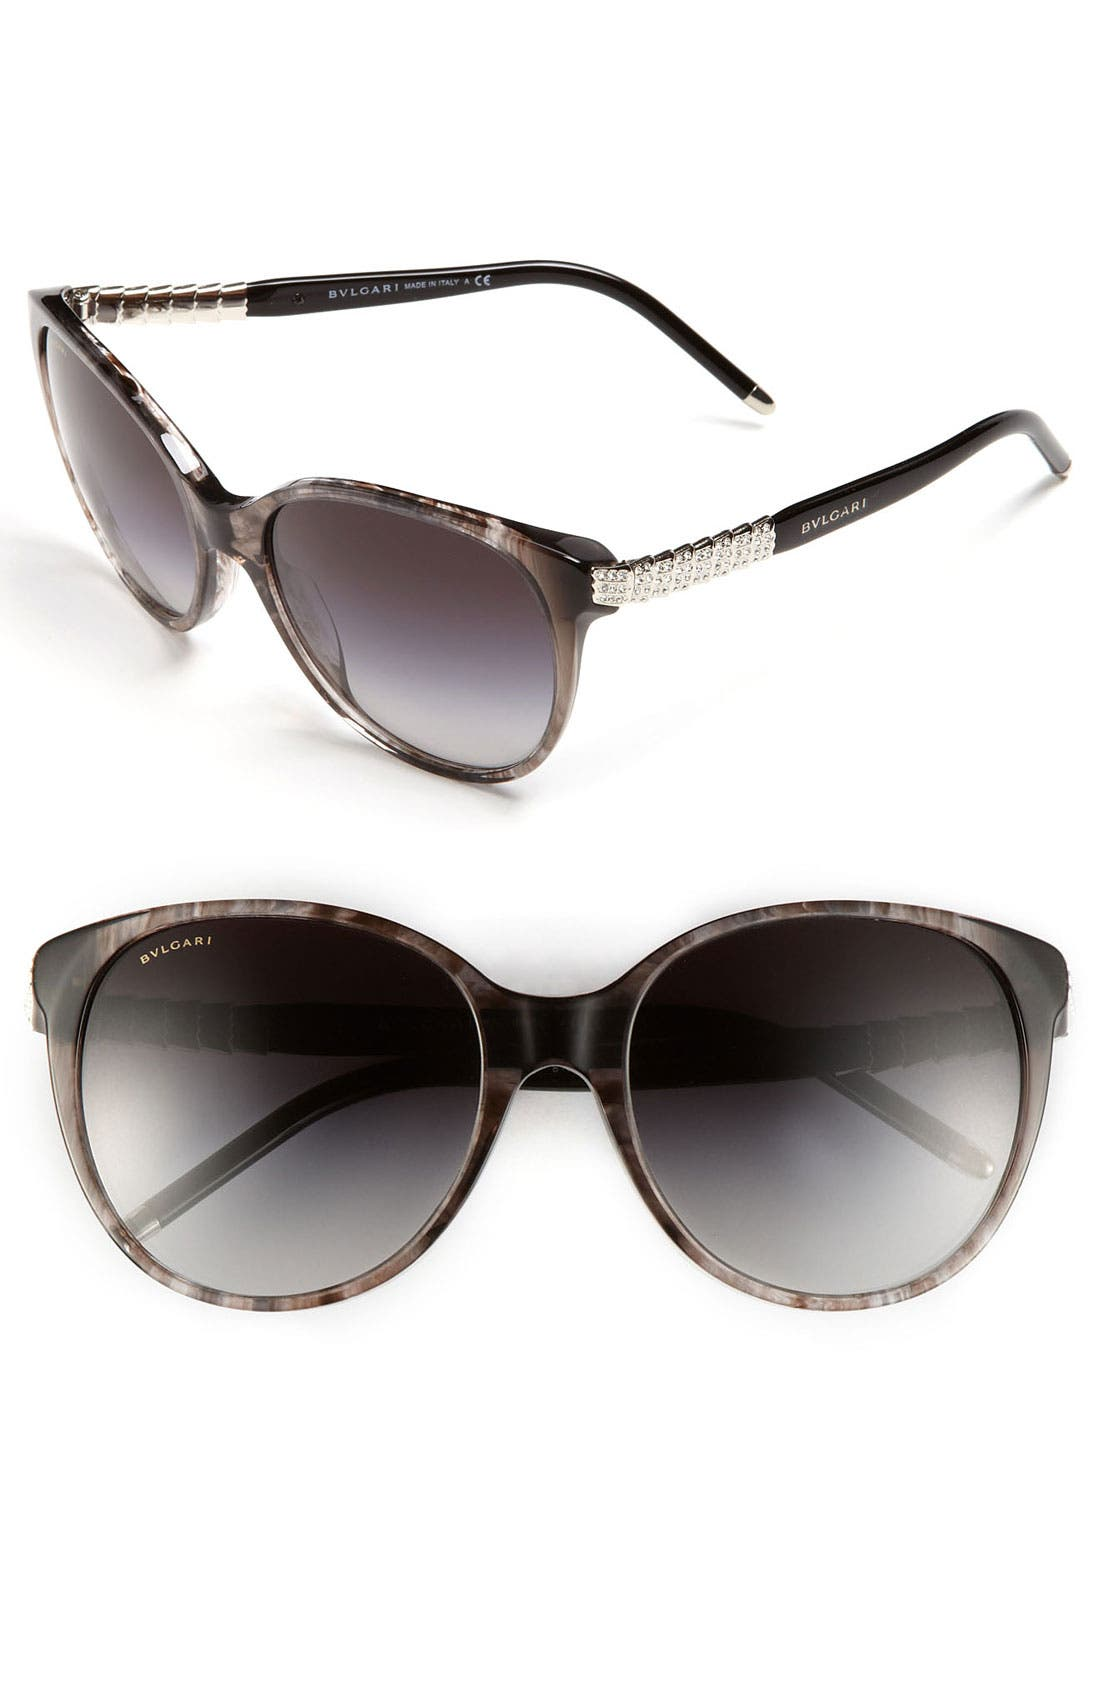 Alternate Image 1 Selected - BVLGARI 56mm Cat's Eye Sunglasses